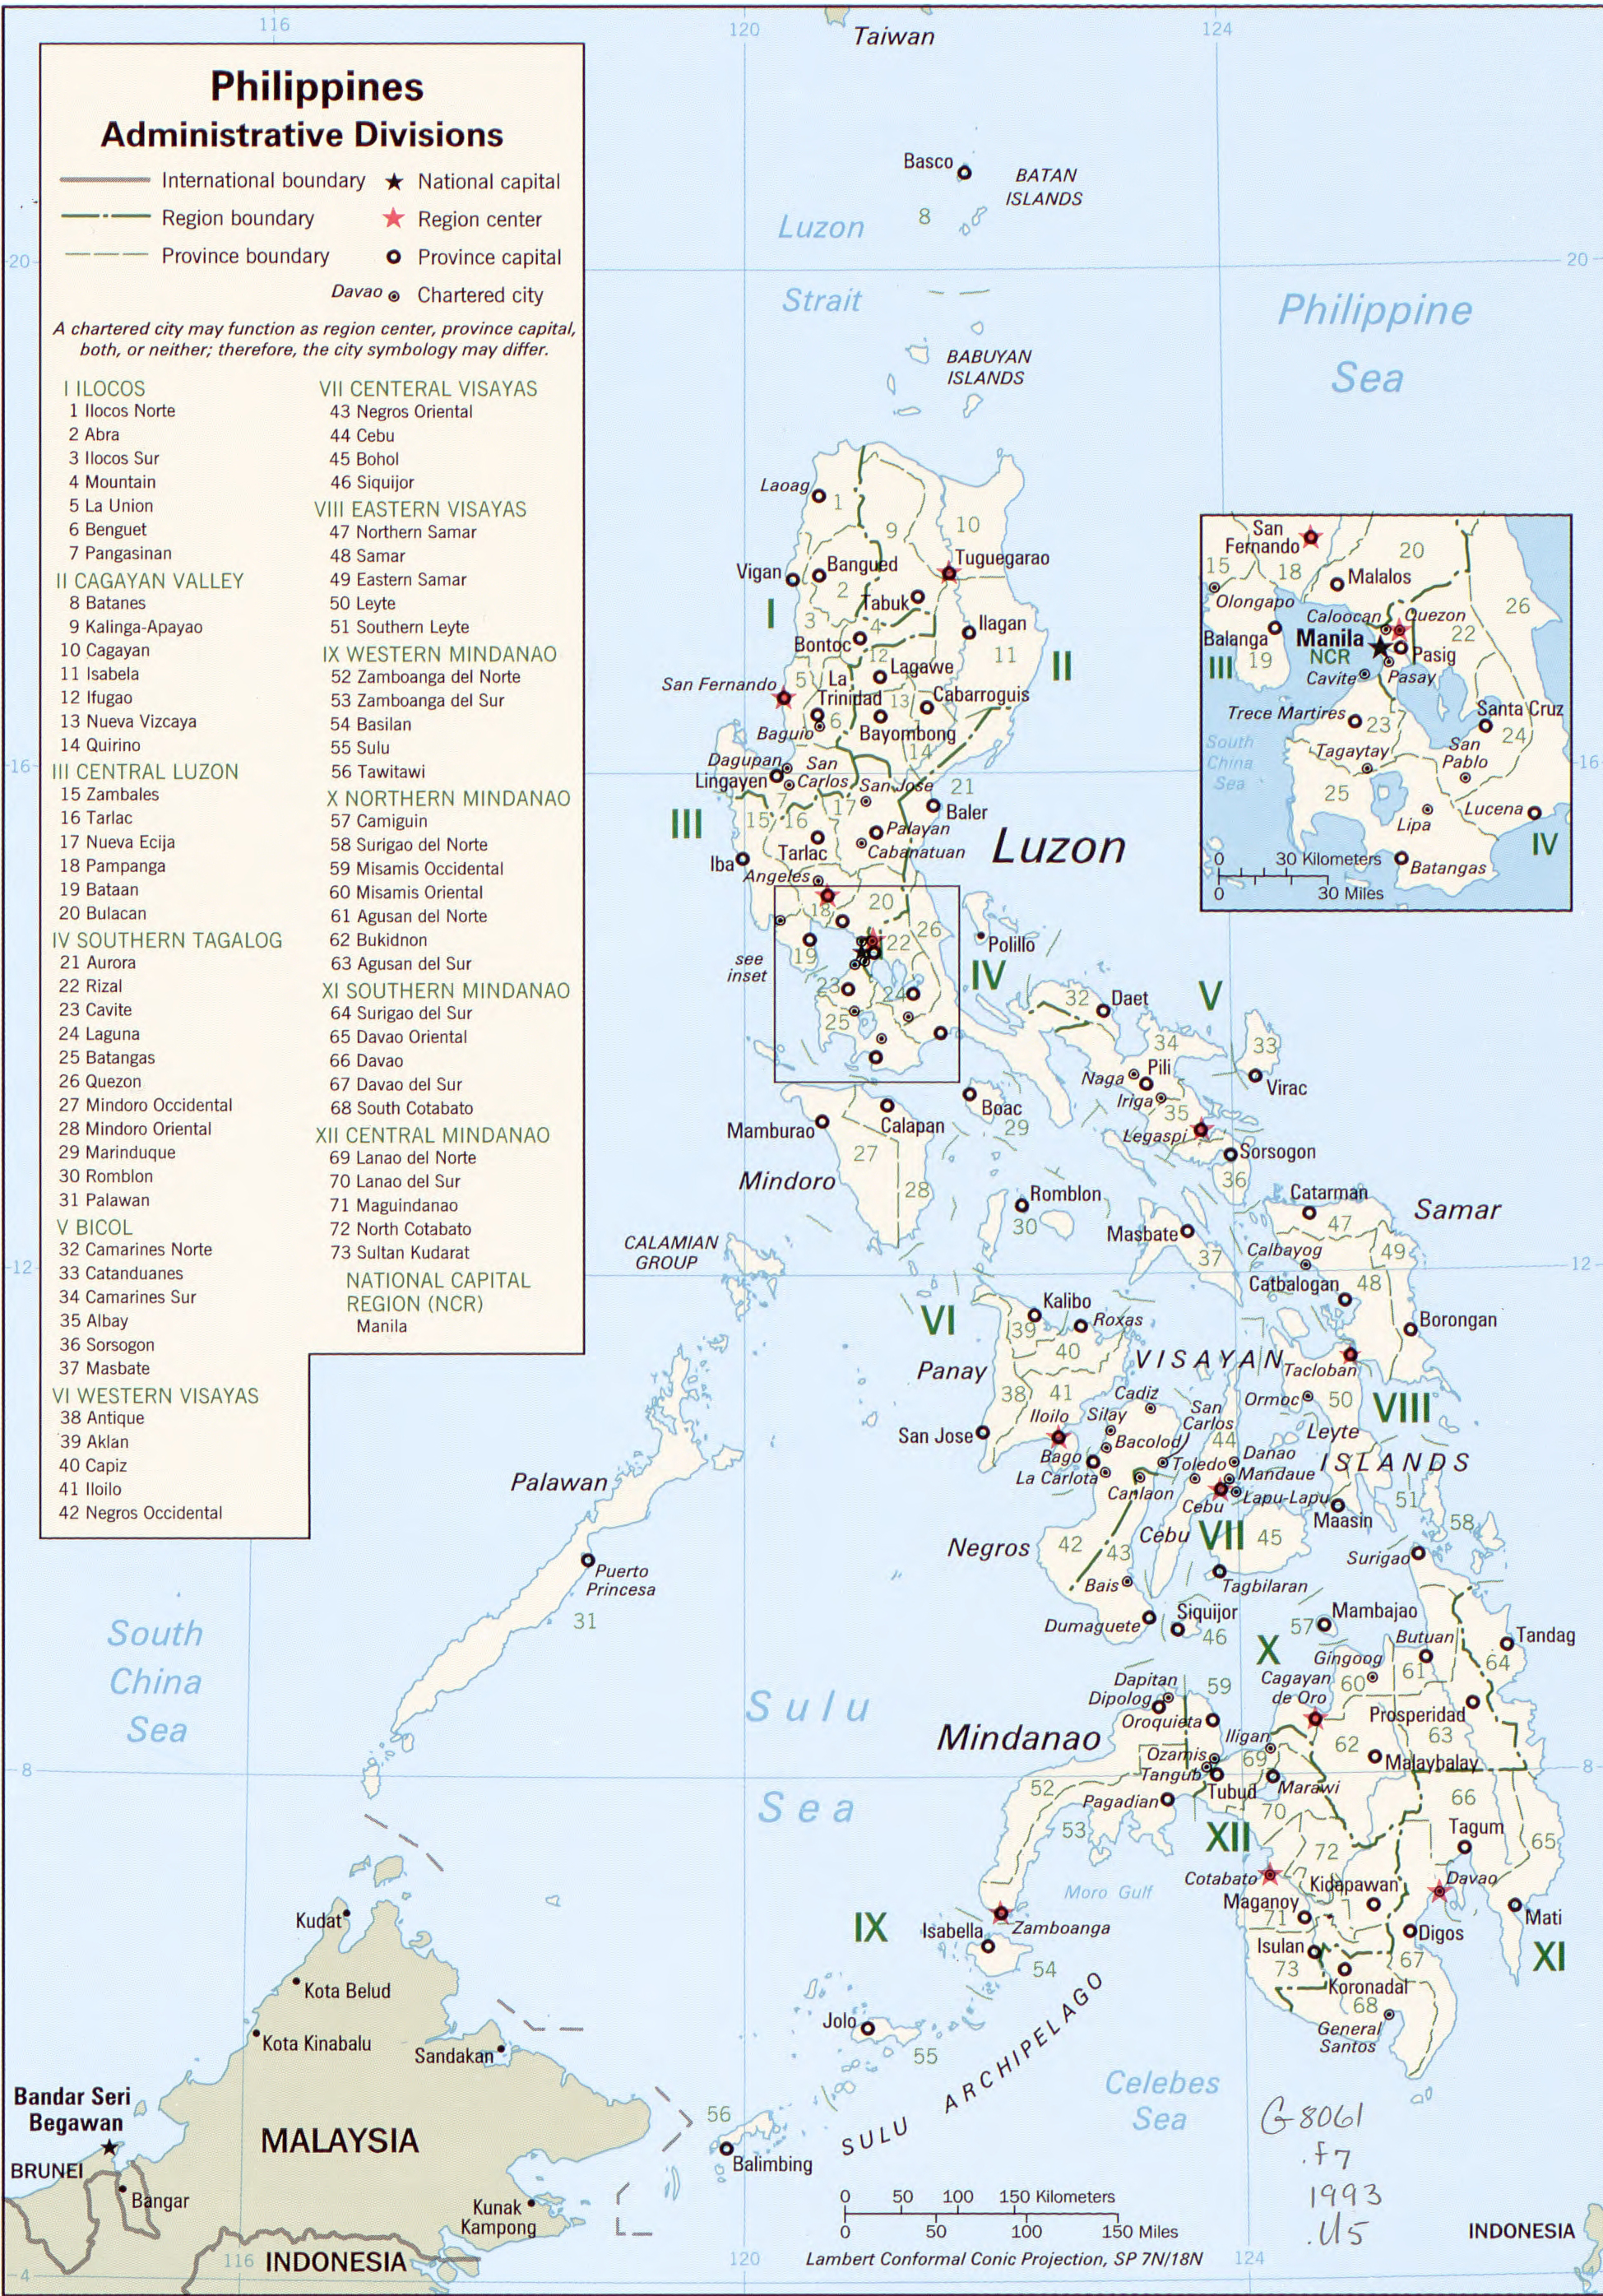 Map of the Philippines 1993